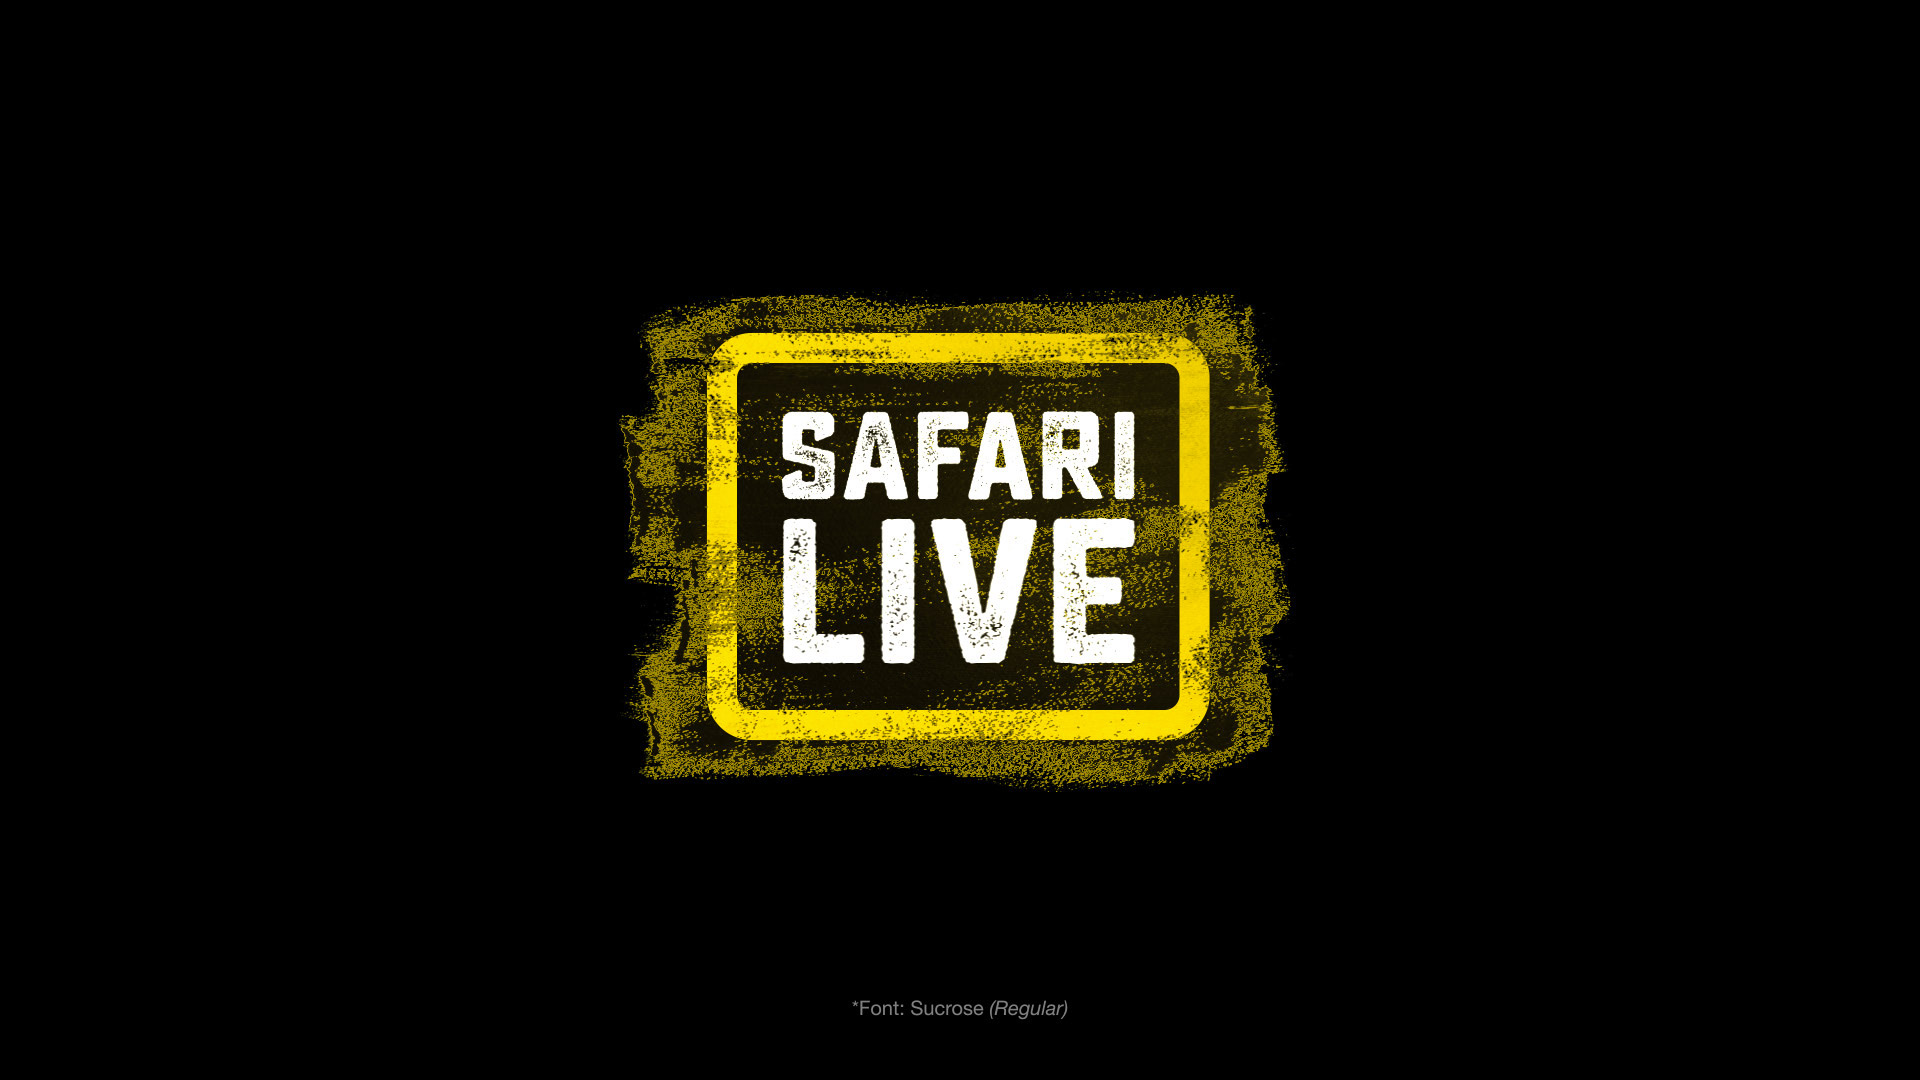 NAT_GEO_SAFARI_LIVE_INITIAL_CONCEPTS_16TH_OCT_17-9